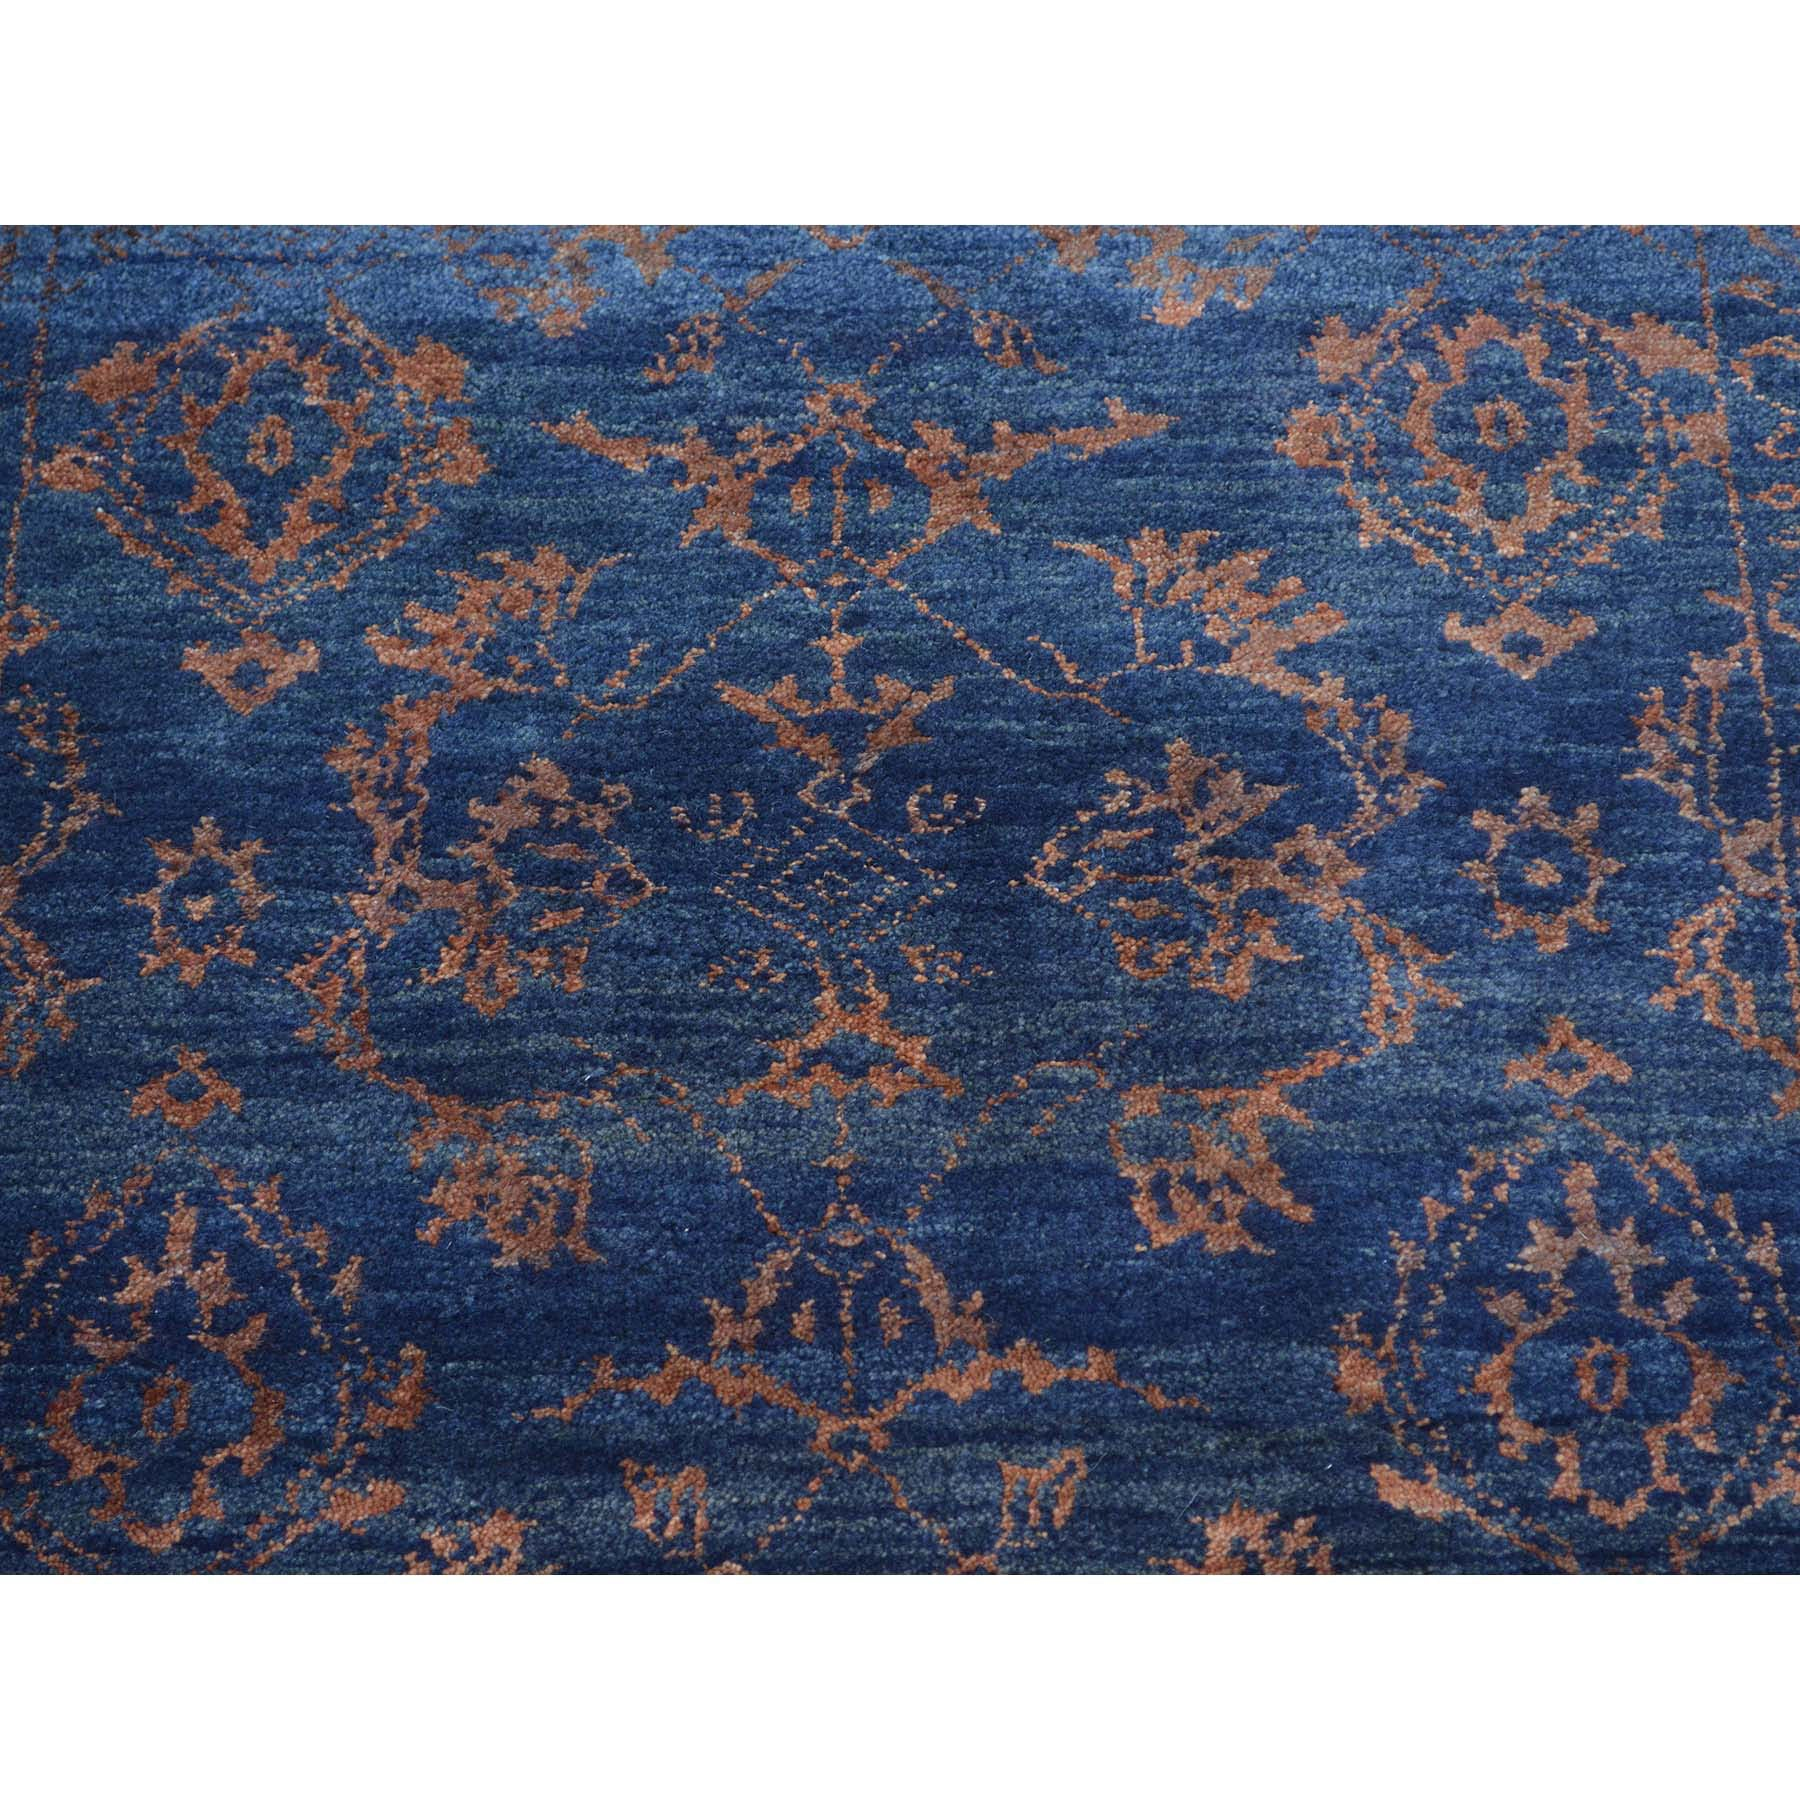 "Handmade Modern and Contemporary Runner Rug > Design# SH27247 > Size: 2'-6"" x 9'-10"" [ONLINE ONLY]"